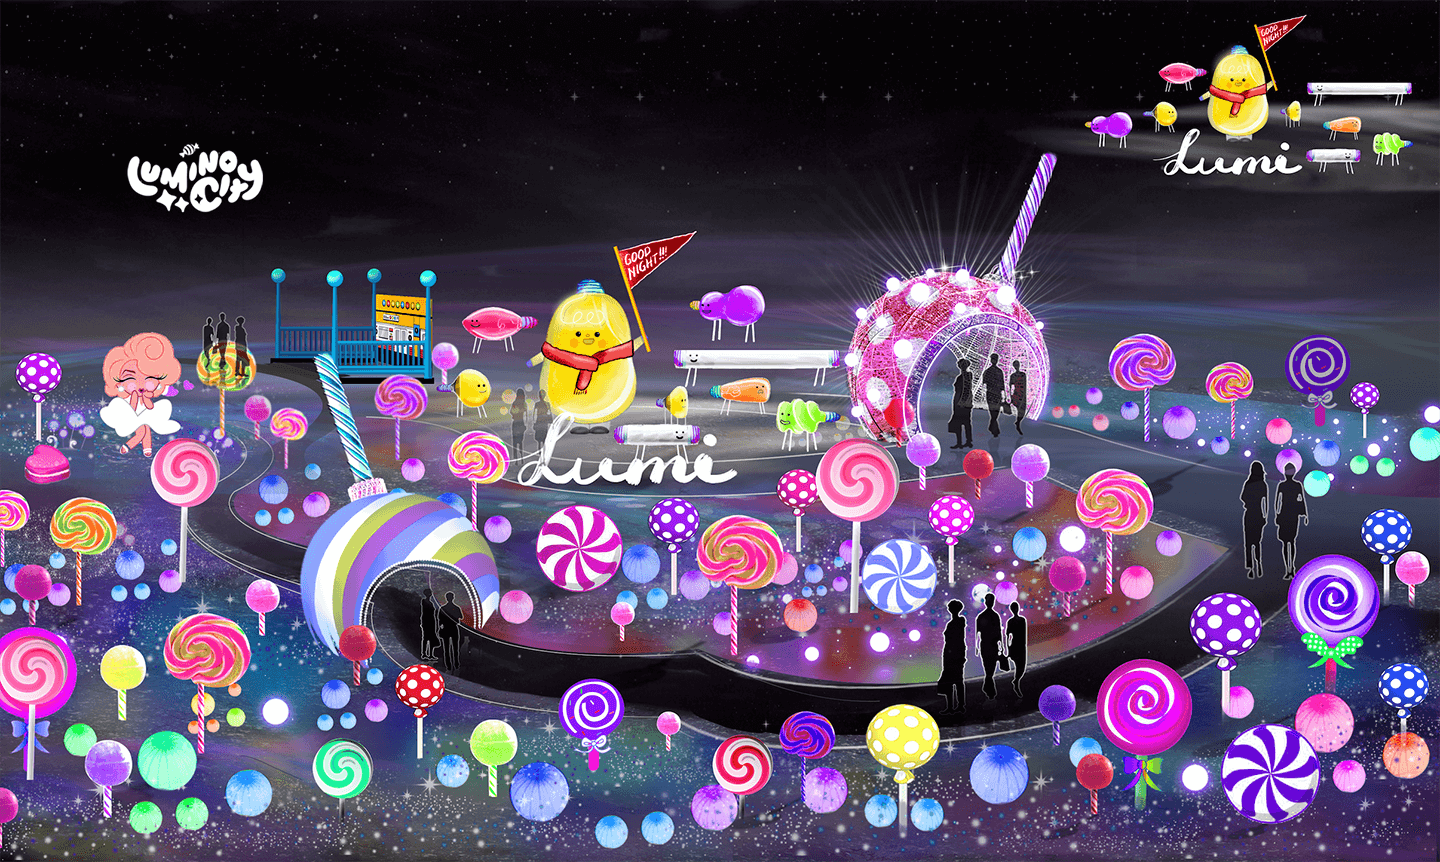 the-candy-station-the-sweet-dream-light-arts-luminocity-festival-rendered-image